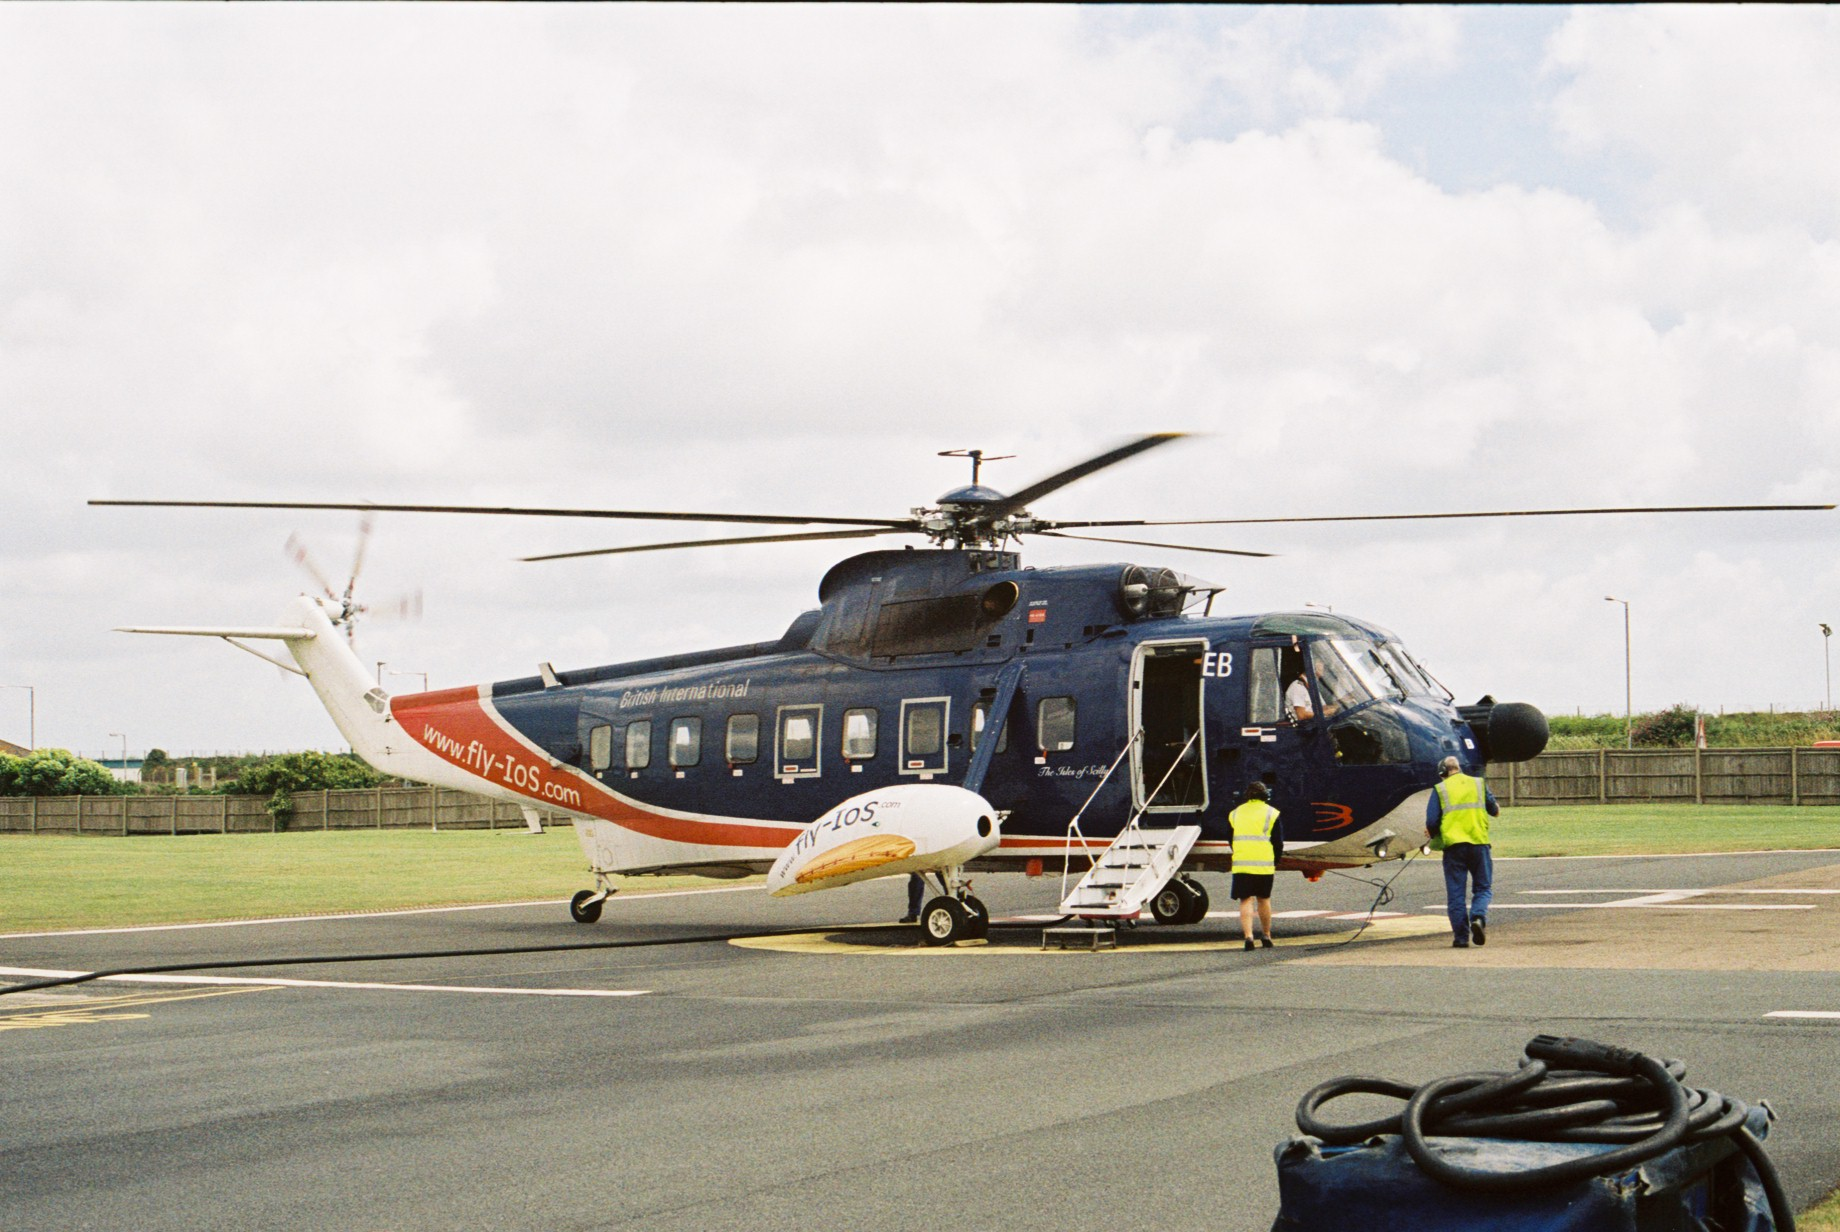 Sikorsky S 61 at Long Rock Heliport, Penzance